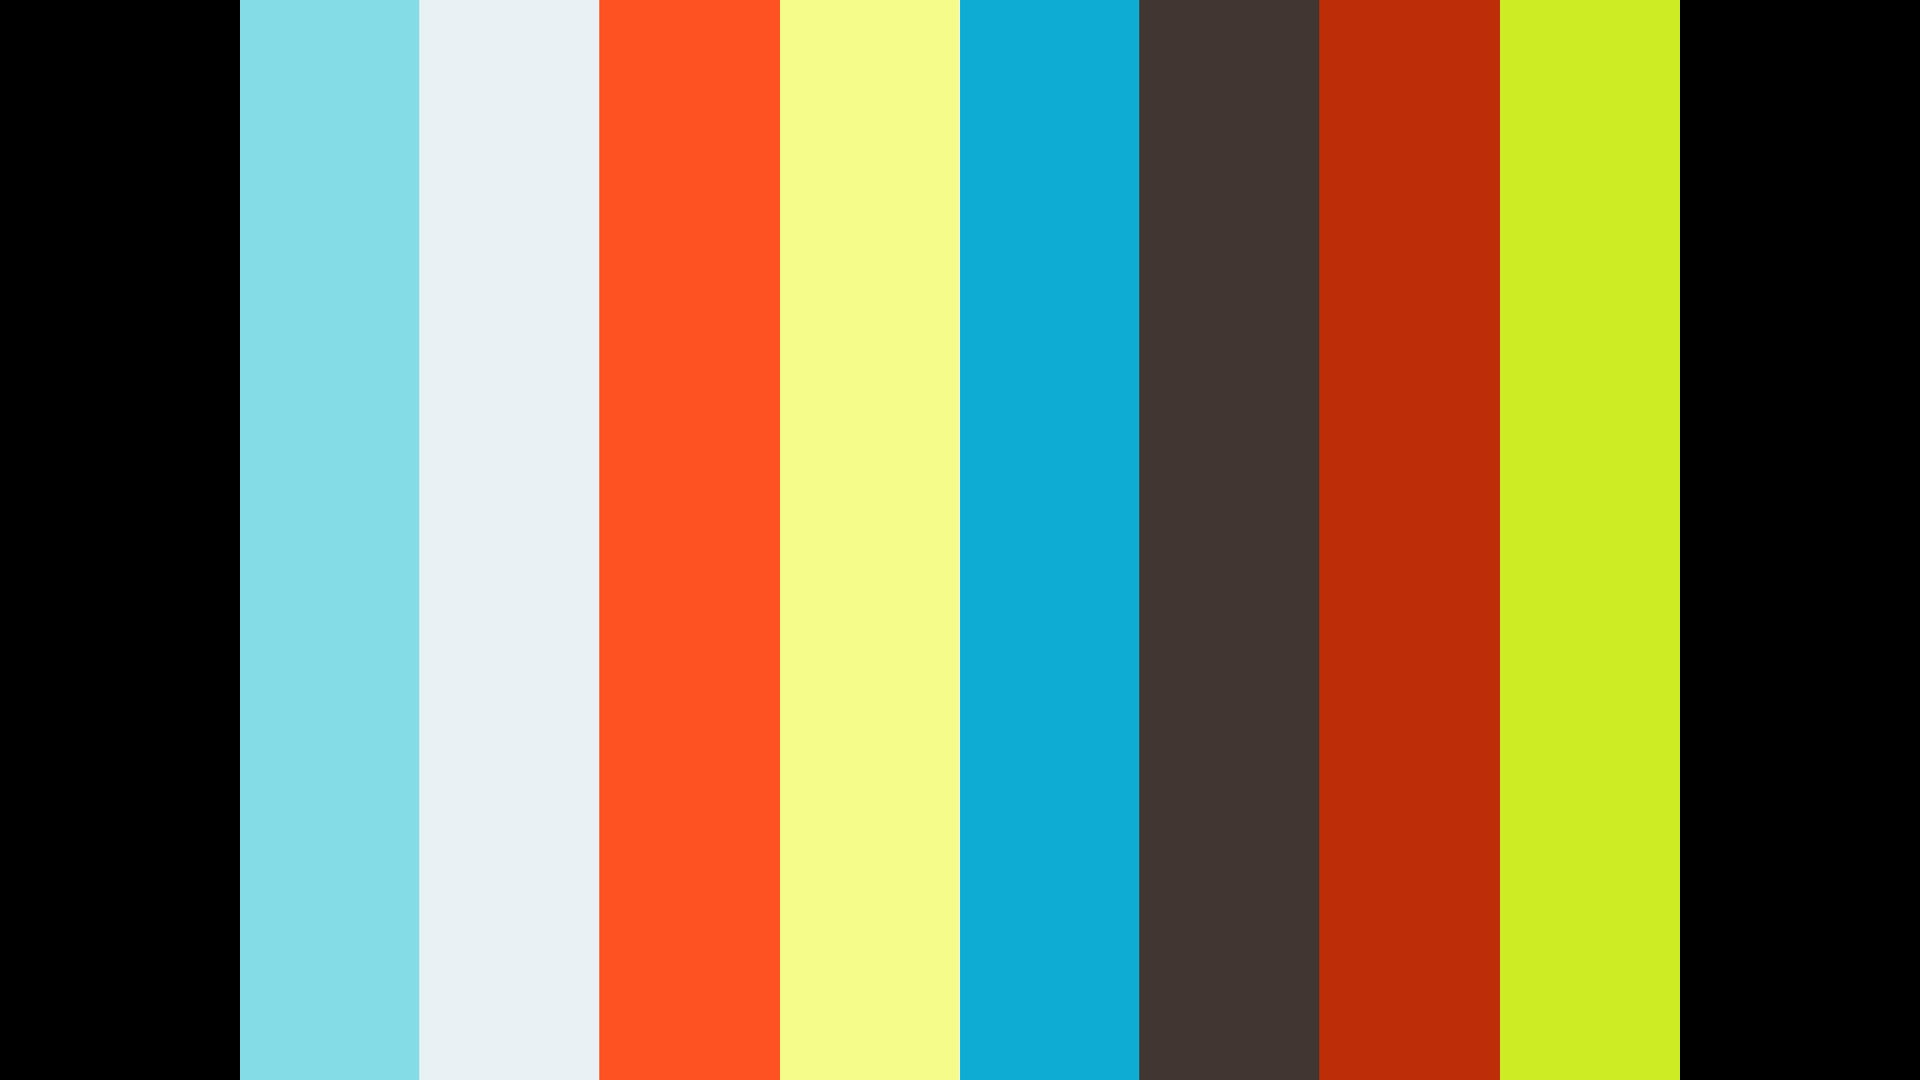 CHEYENNE ALVEY_CFAN STORIES